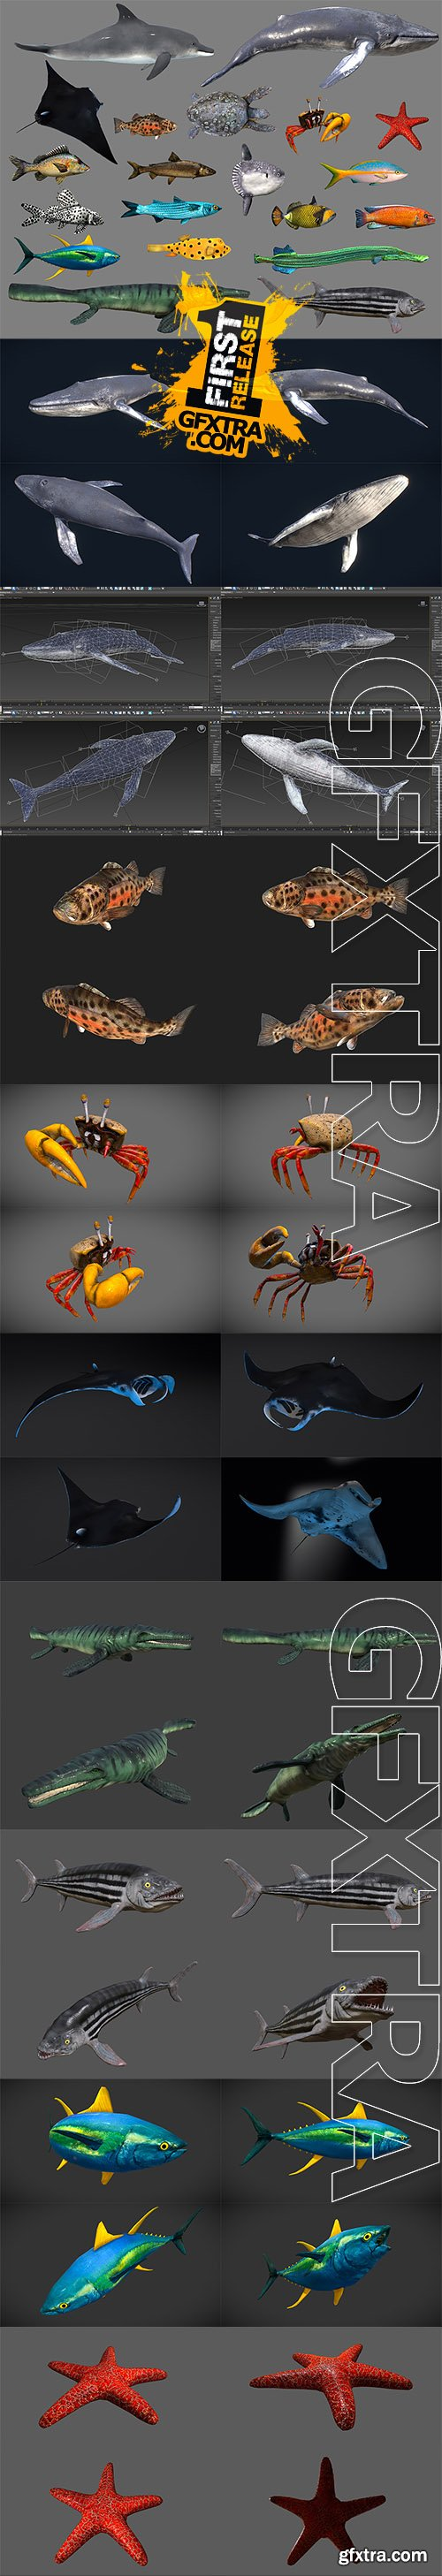 Cubebrush - Low poly Fish Collection Animated Pack 4